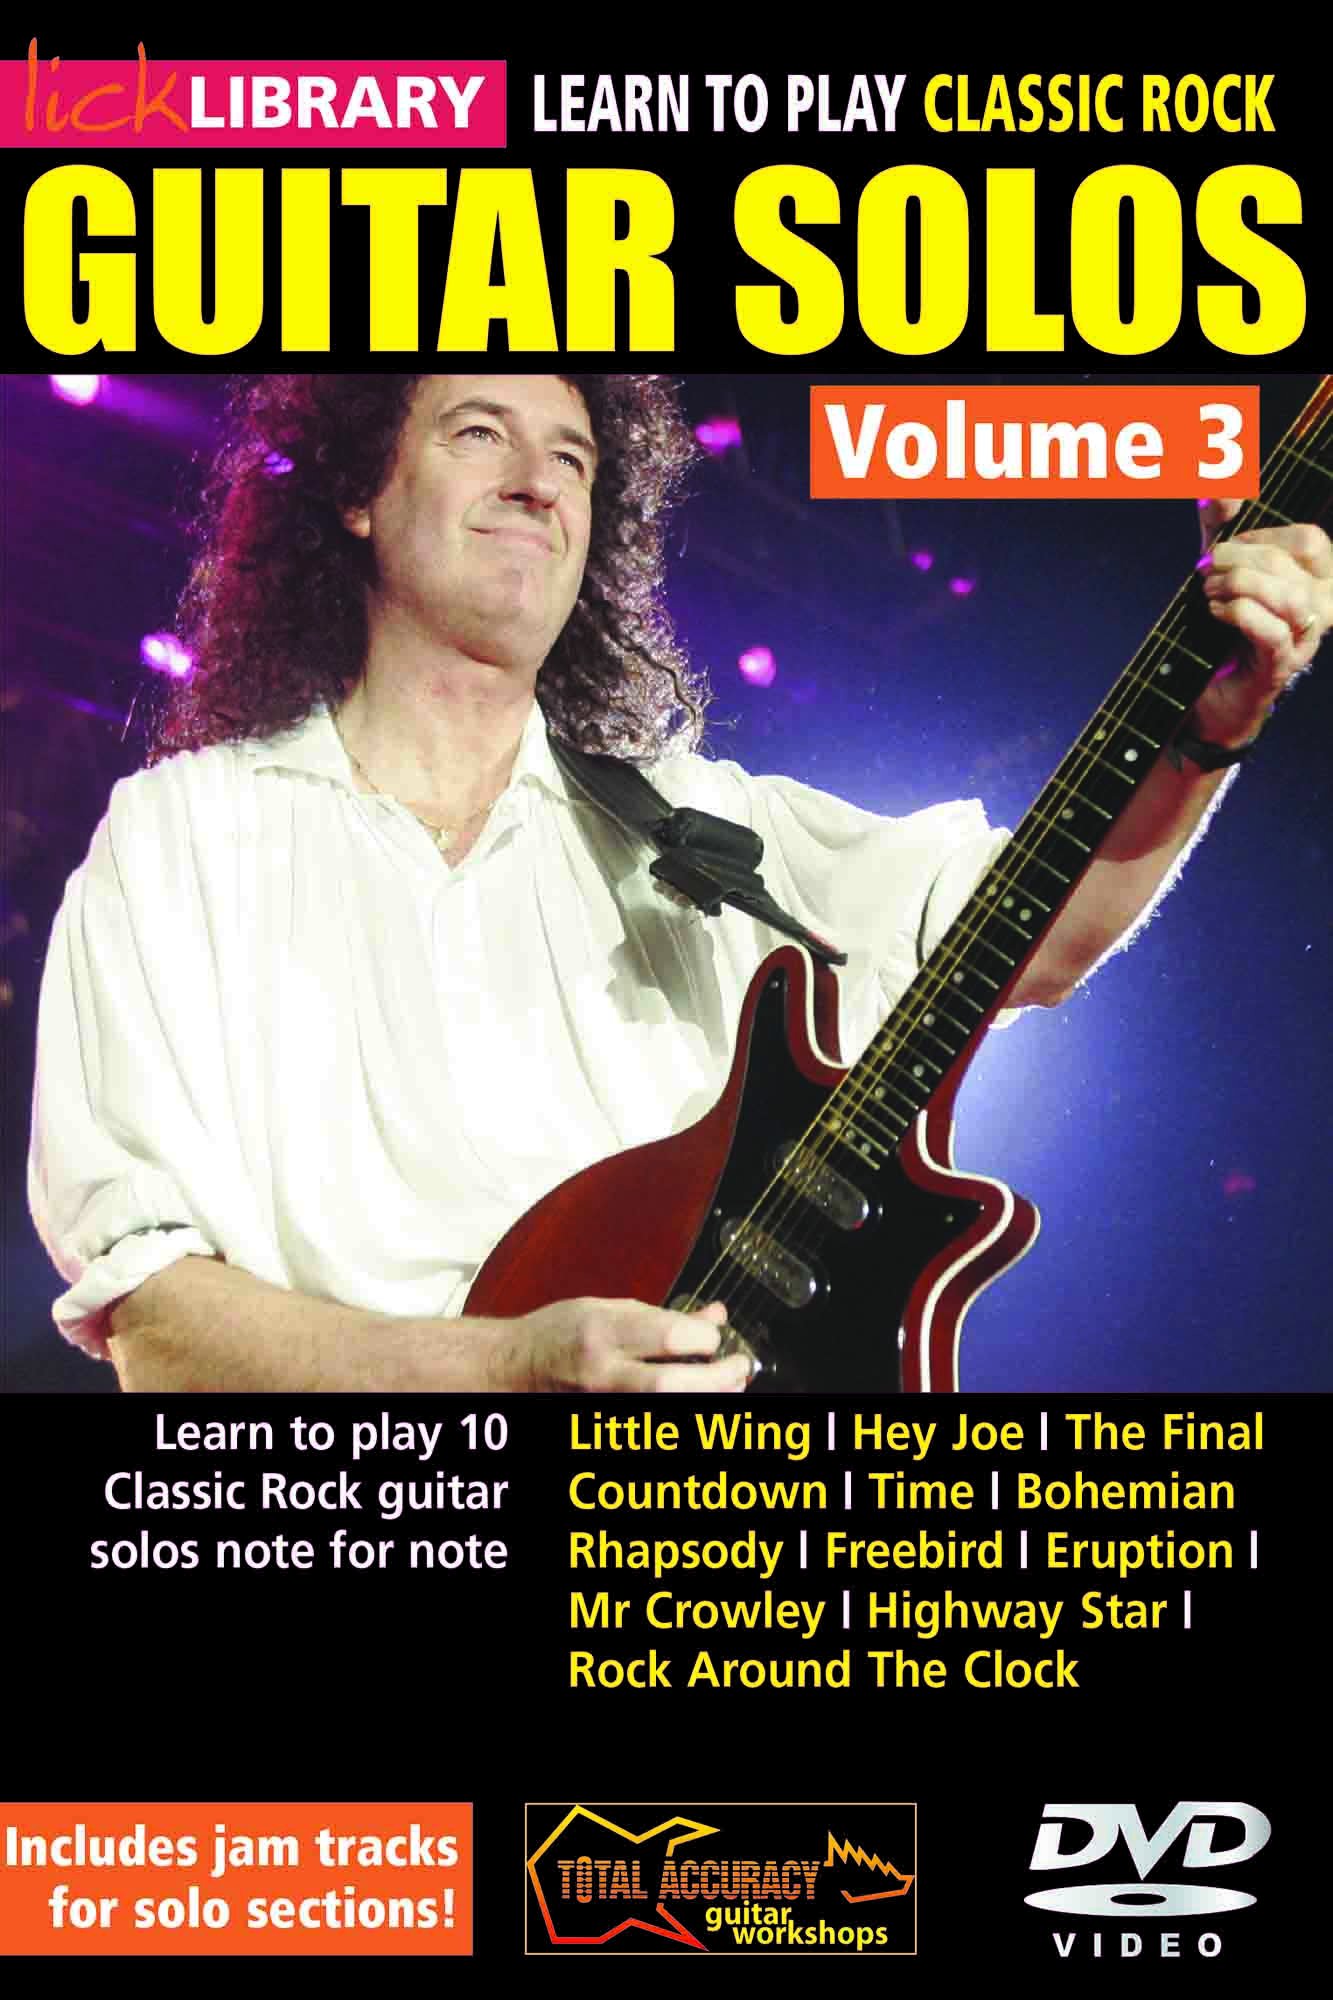 Learn To Play Classic Rock Guitar Solos Volume 3